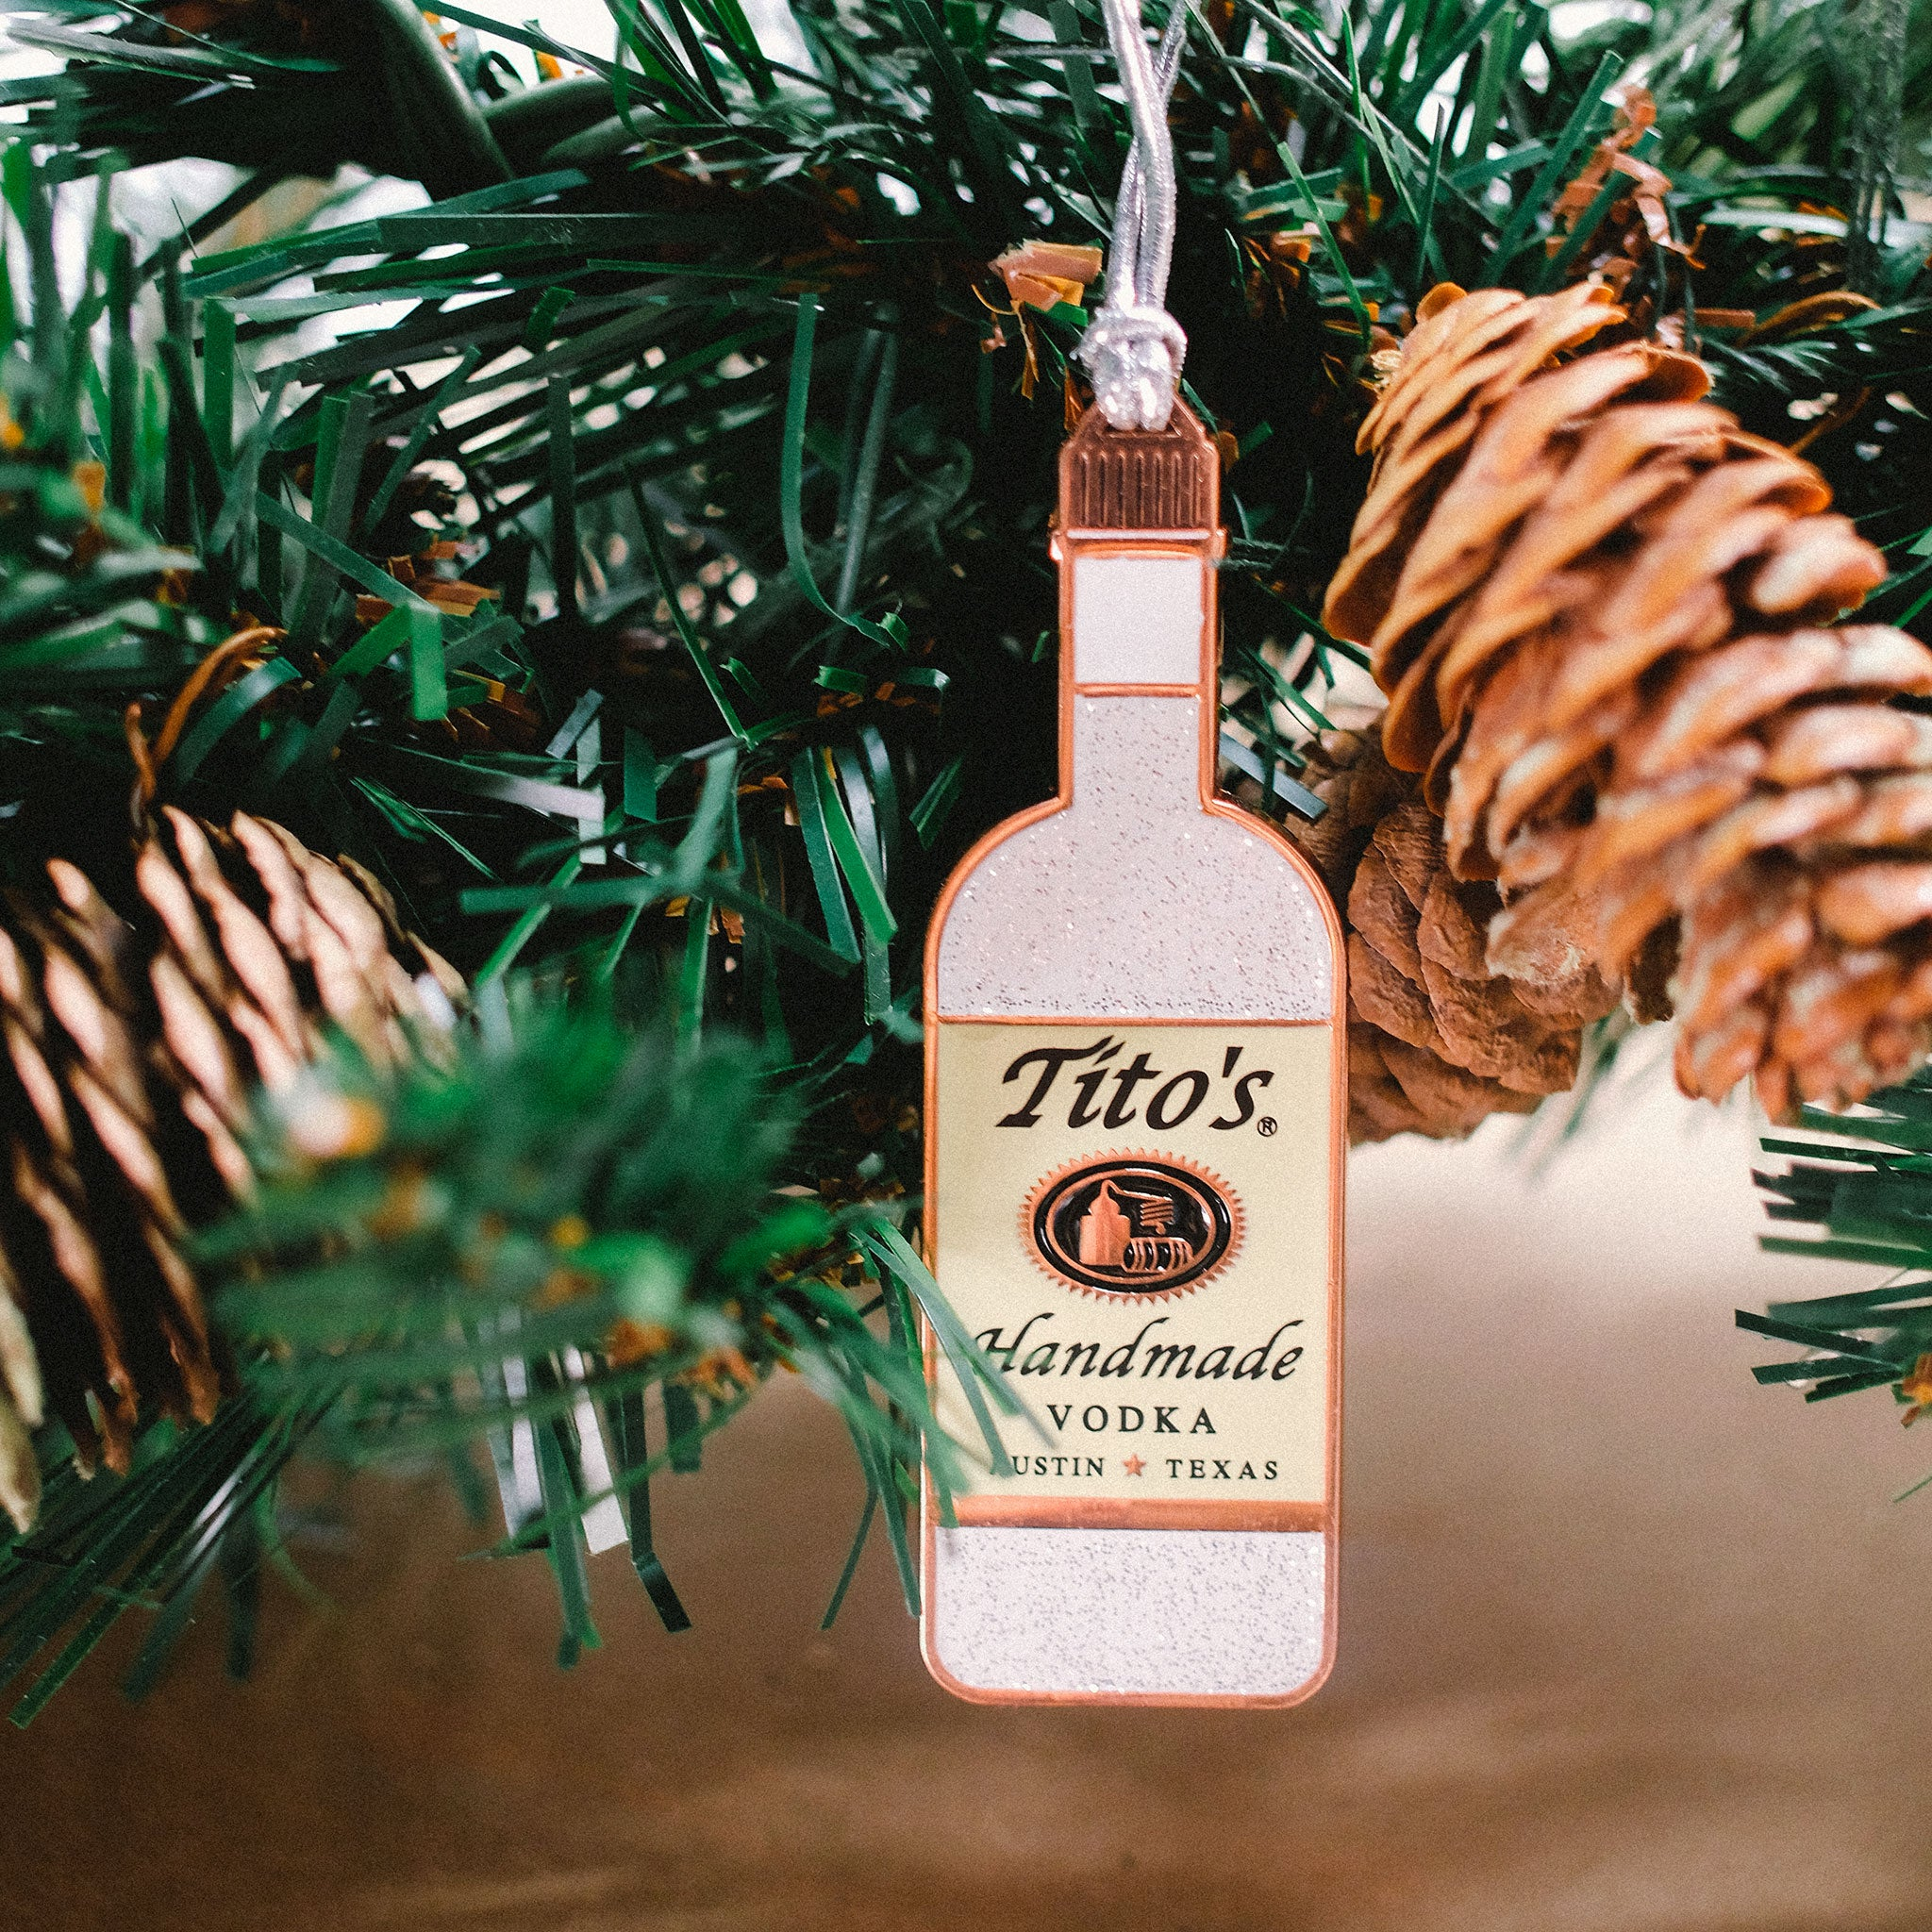 Tito's Handmade Vodka bottle ornament hanging on holiday greenery garland with pinecones